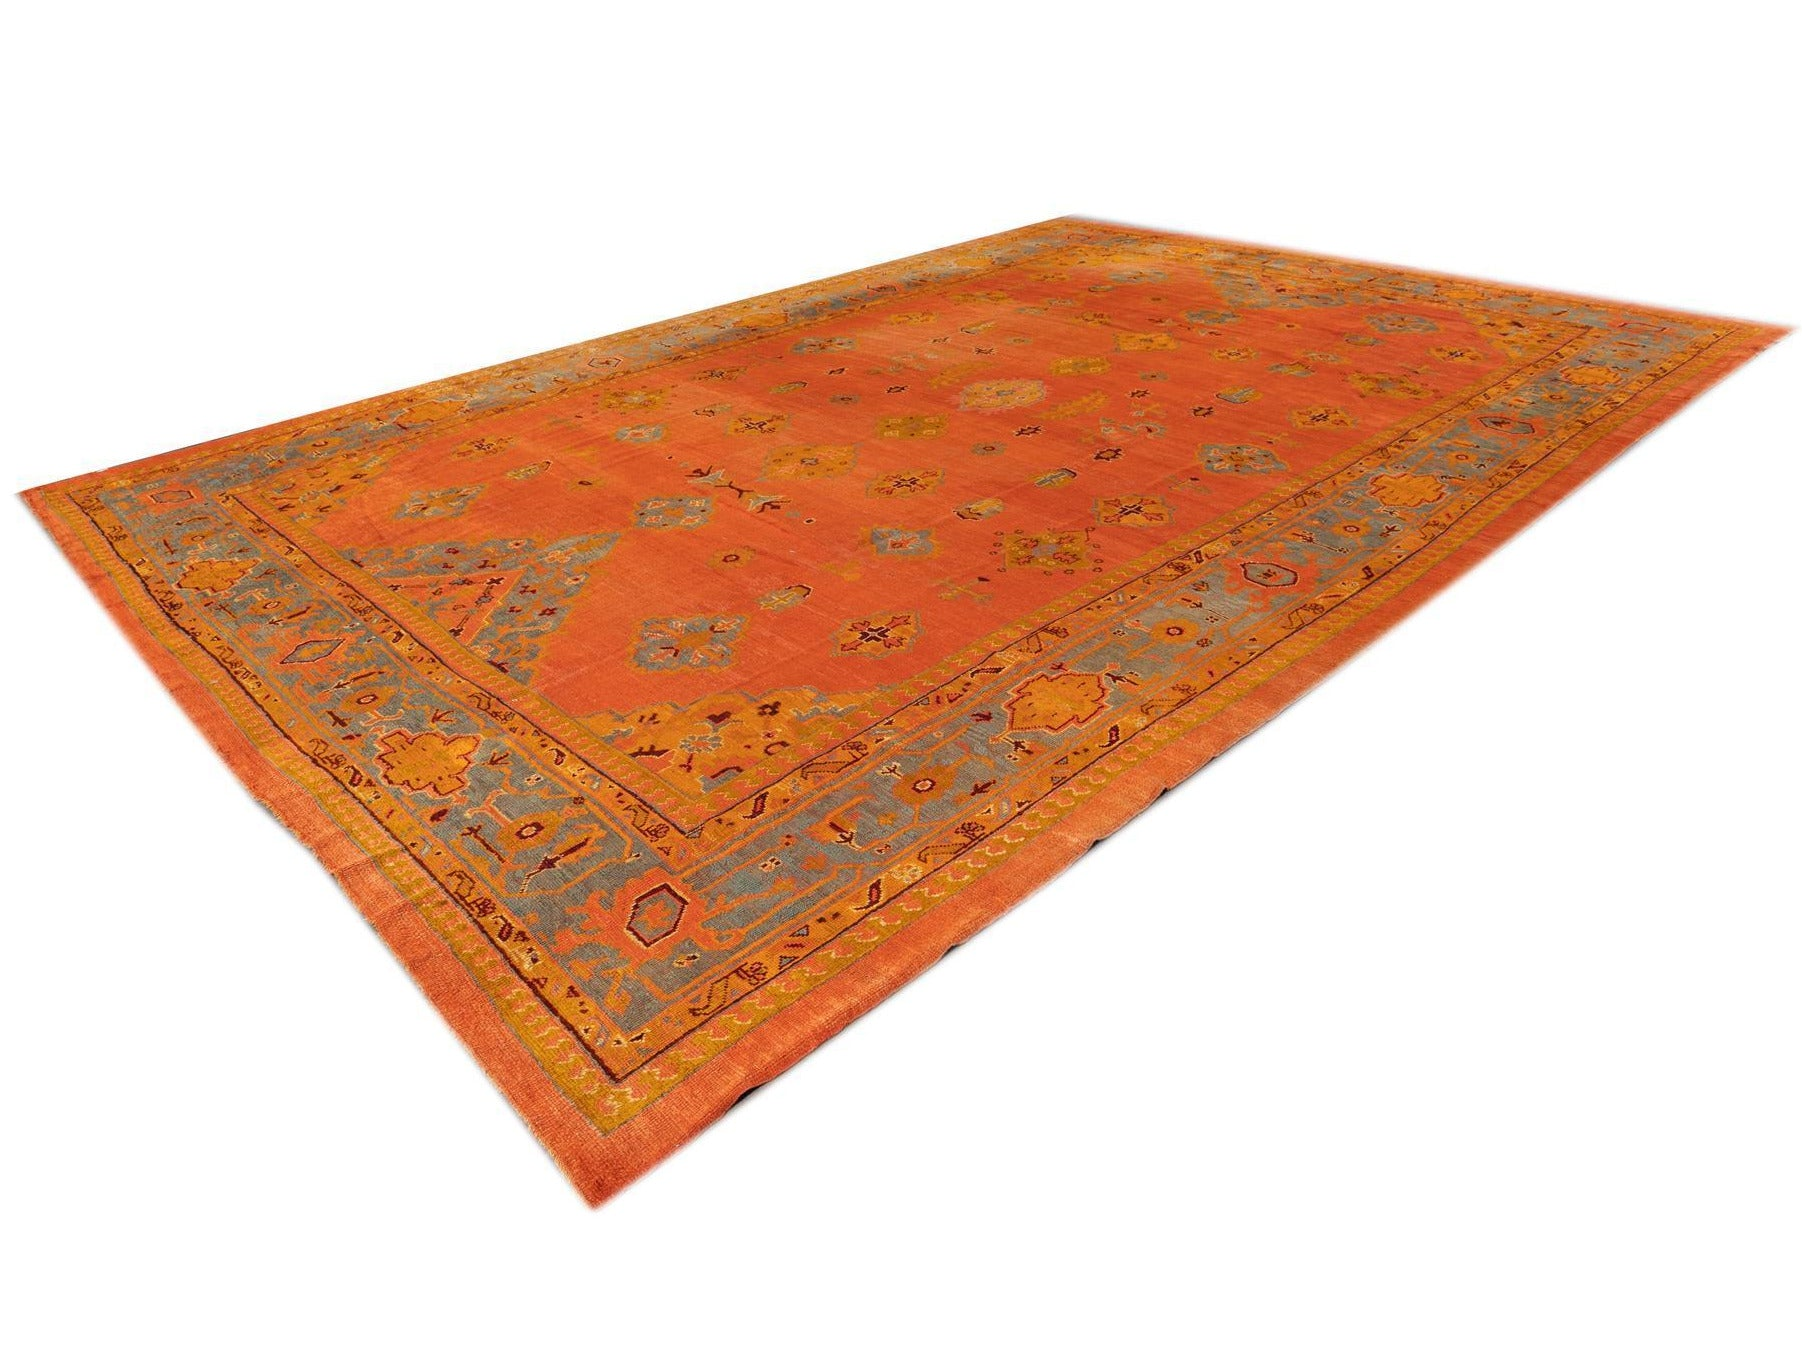 19th Century Antique Oushak Rug, 13x19